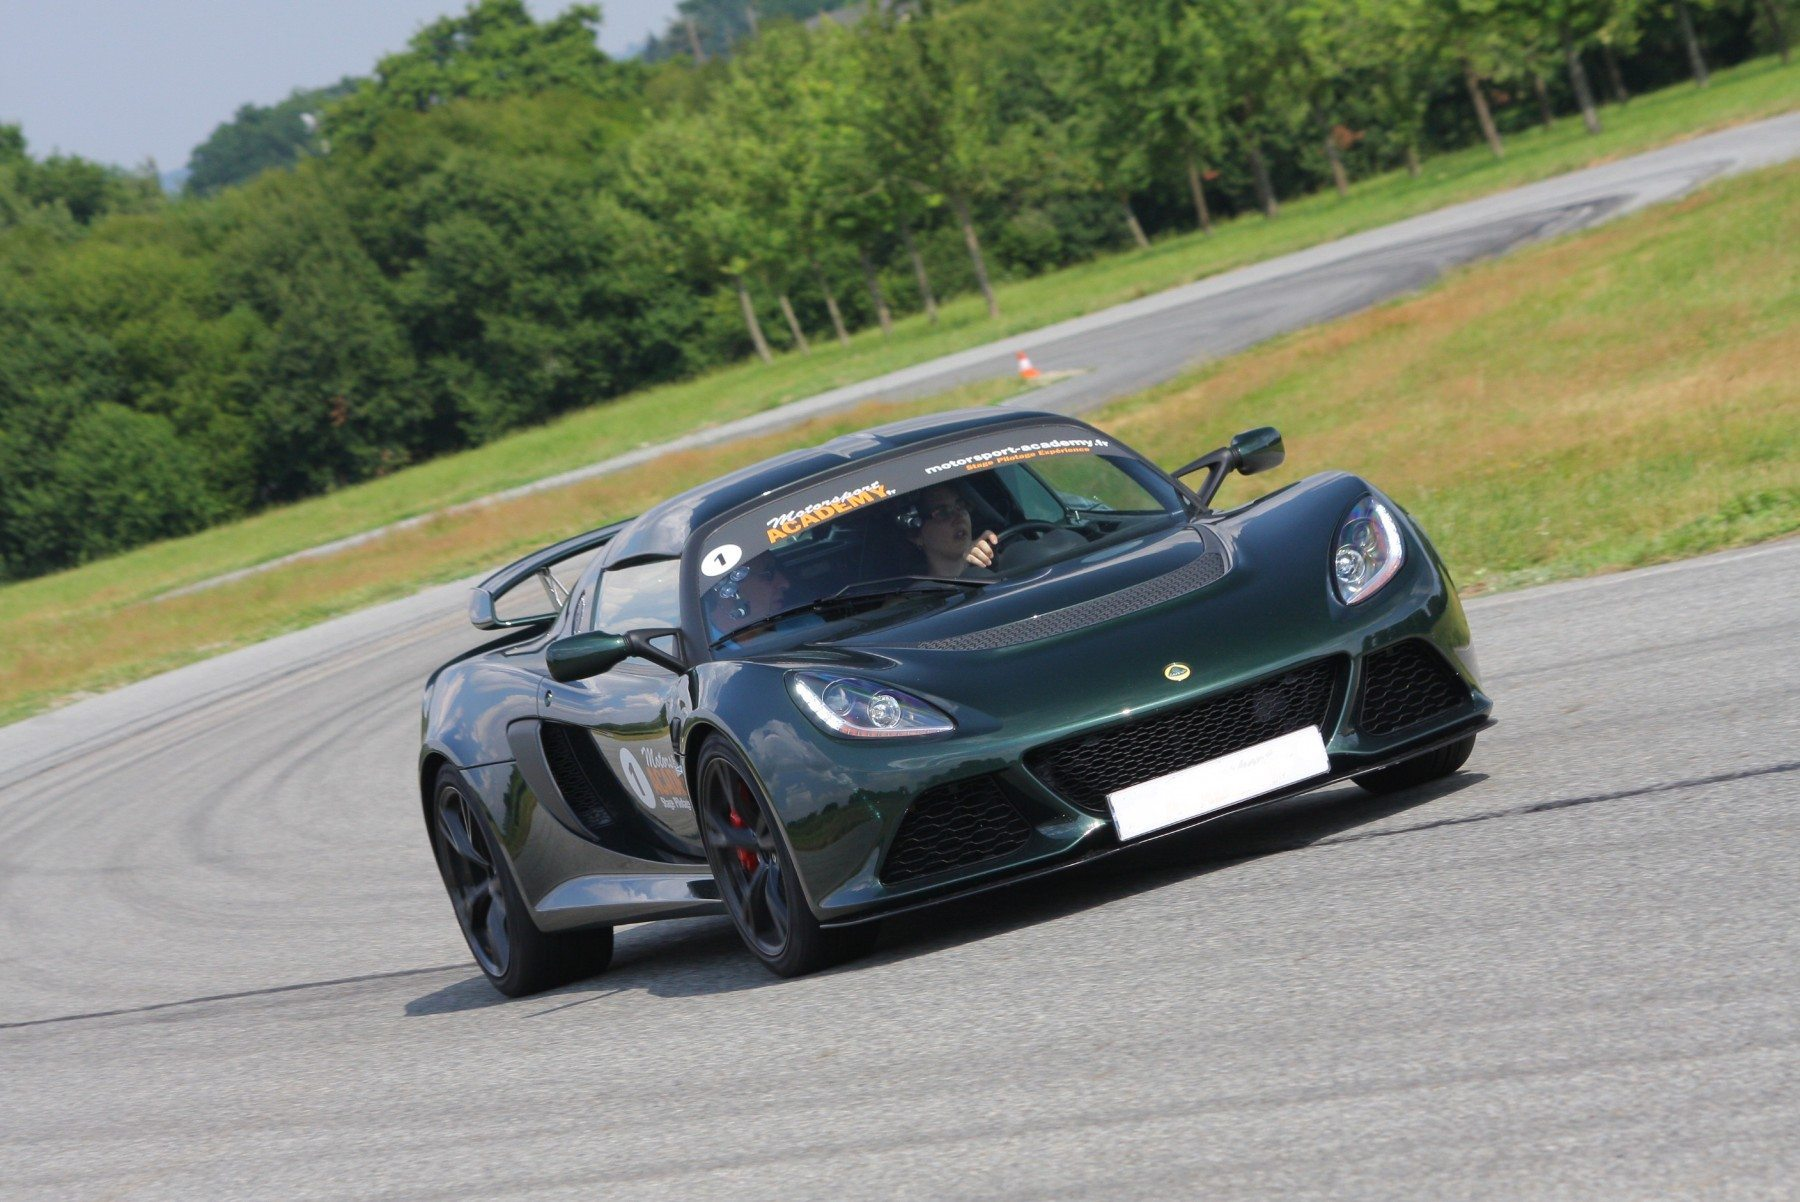 pilotage lotus exige s le mans maison blanche. Black Bedroom Furniture Sets. Home Design Ideas